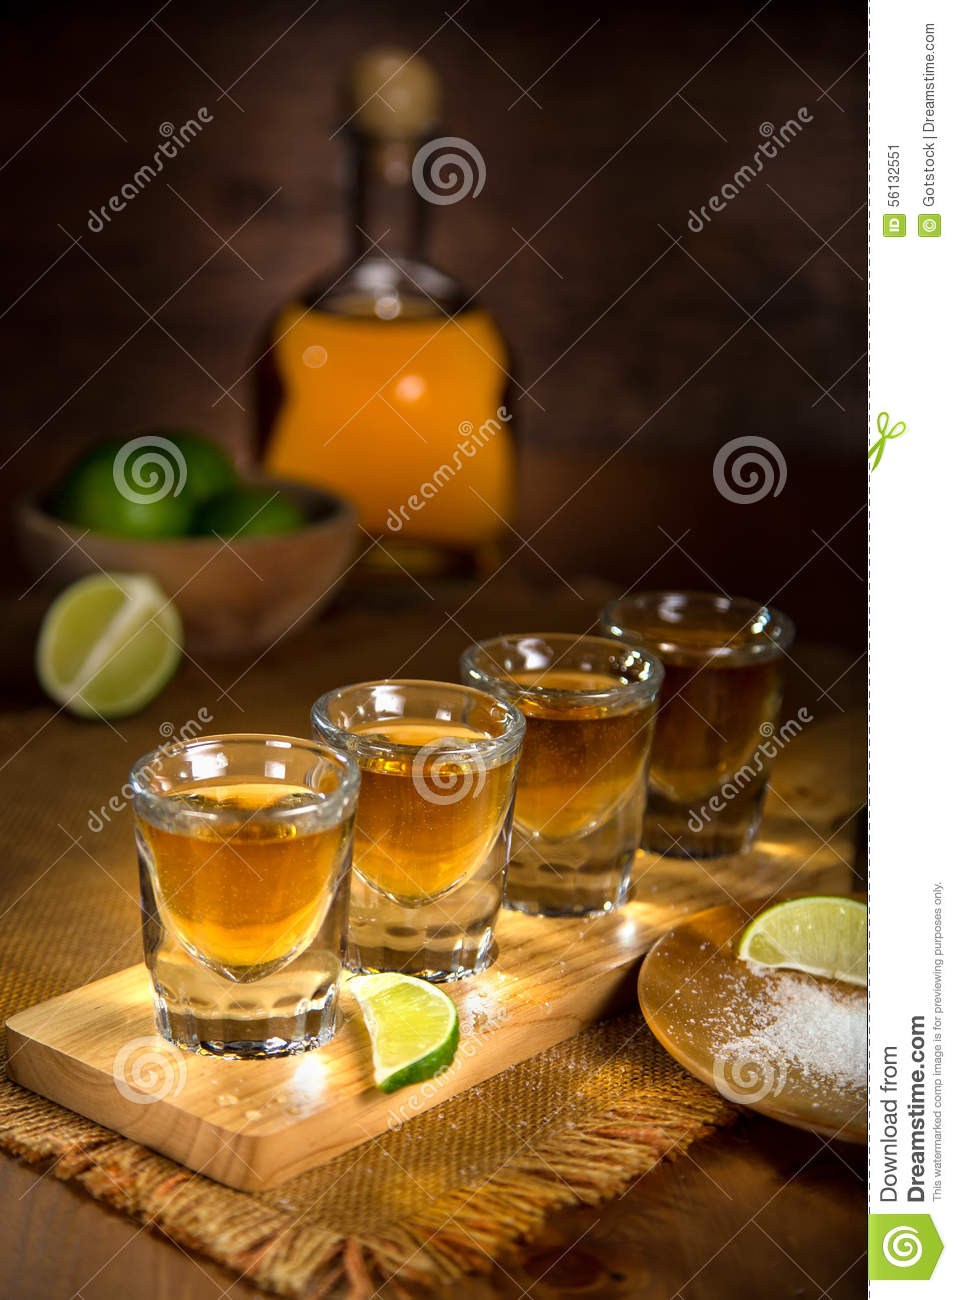 artistic lighting. Gold Tequila Shot Glasses And Bottle Served In A Group Artistic Lighting Stock Image - Of Group, Drink: 56132551